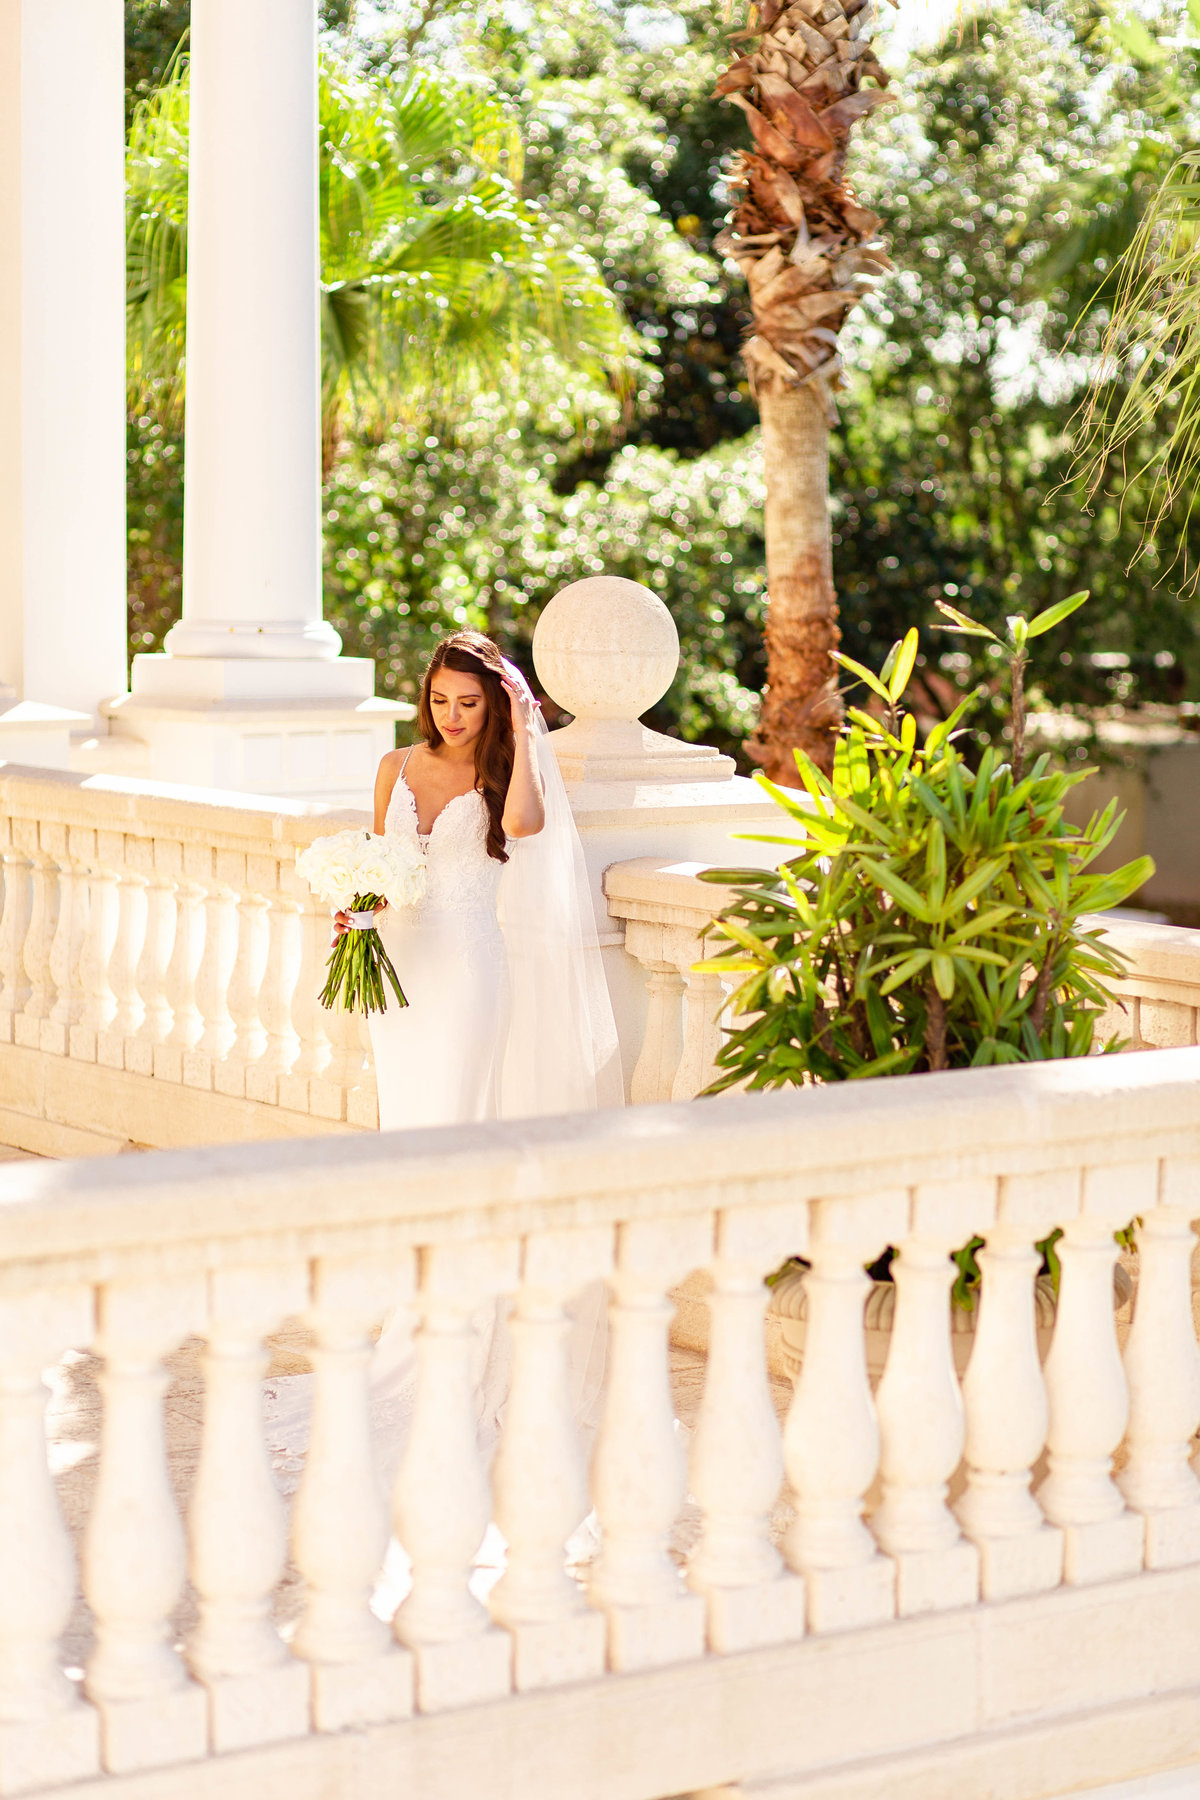 Bride in white wedding dress stands fixing her hair on her wedding day at wedding venue with marble flooring and white decor in Davenport, Florida